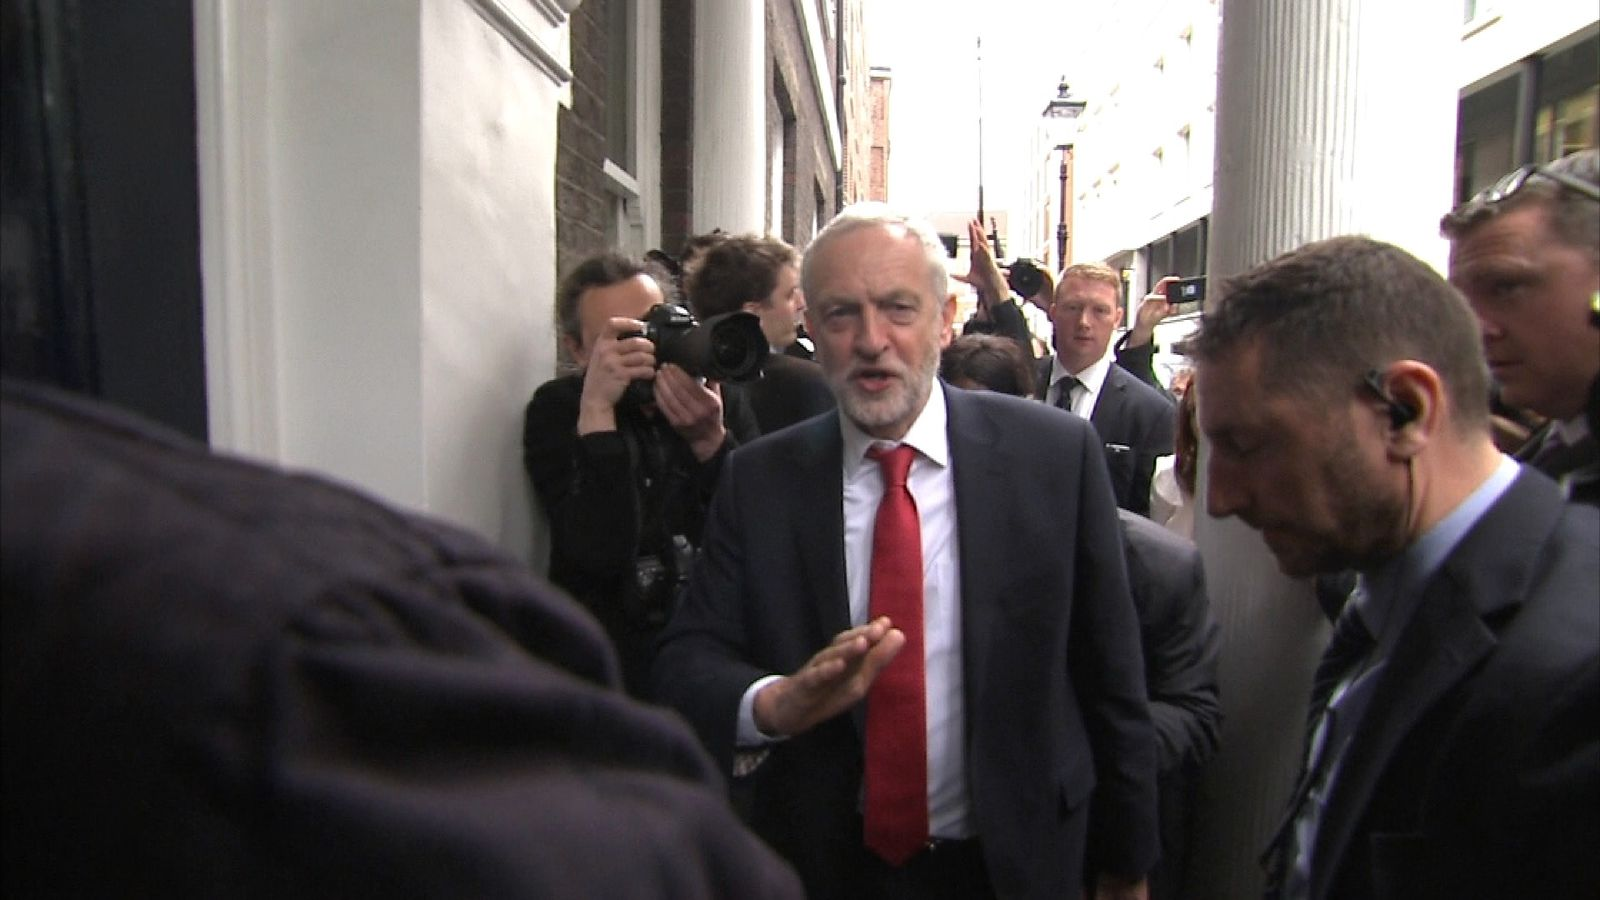 Jeremy Corbyn is not afraid to stand up to President Trump